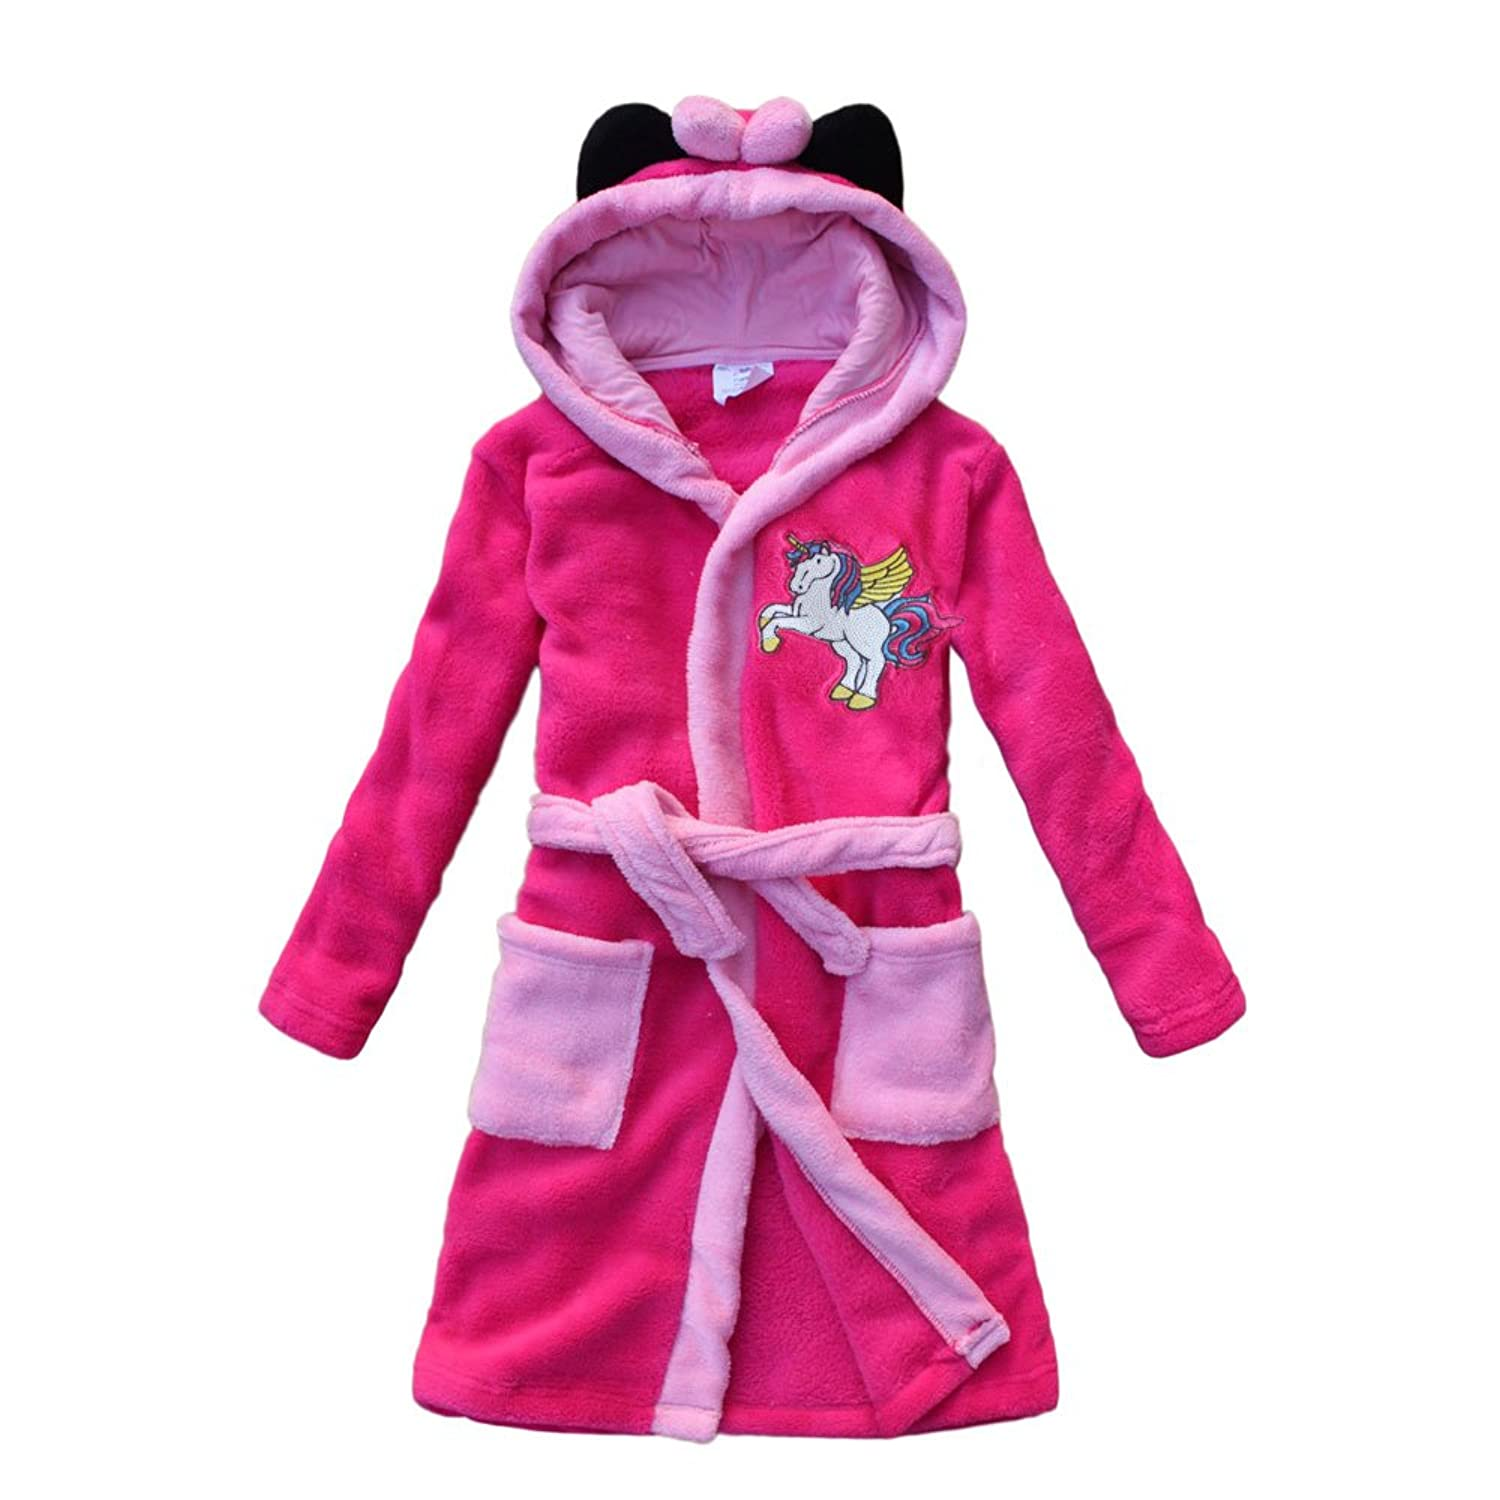 2018 Unicorn Embroidery Girls Bathrobes Children's Nightdresses Coral Cashmere Girls Gown